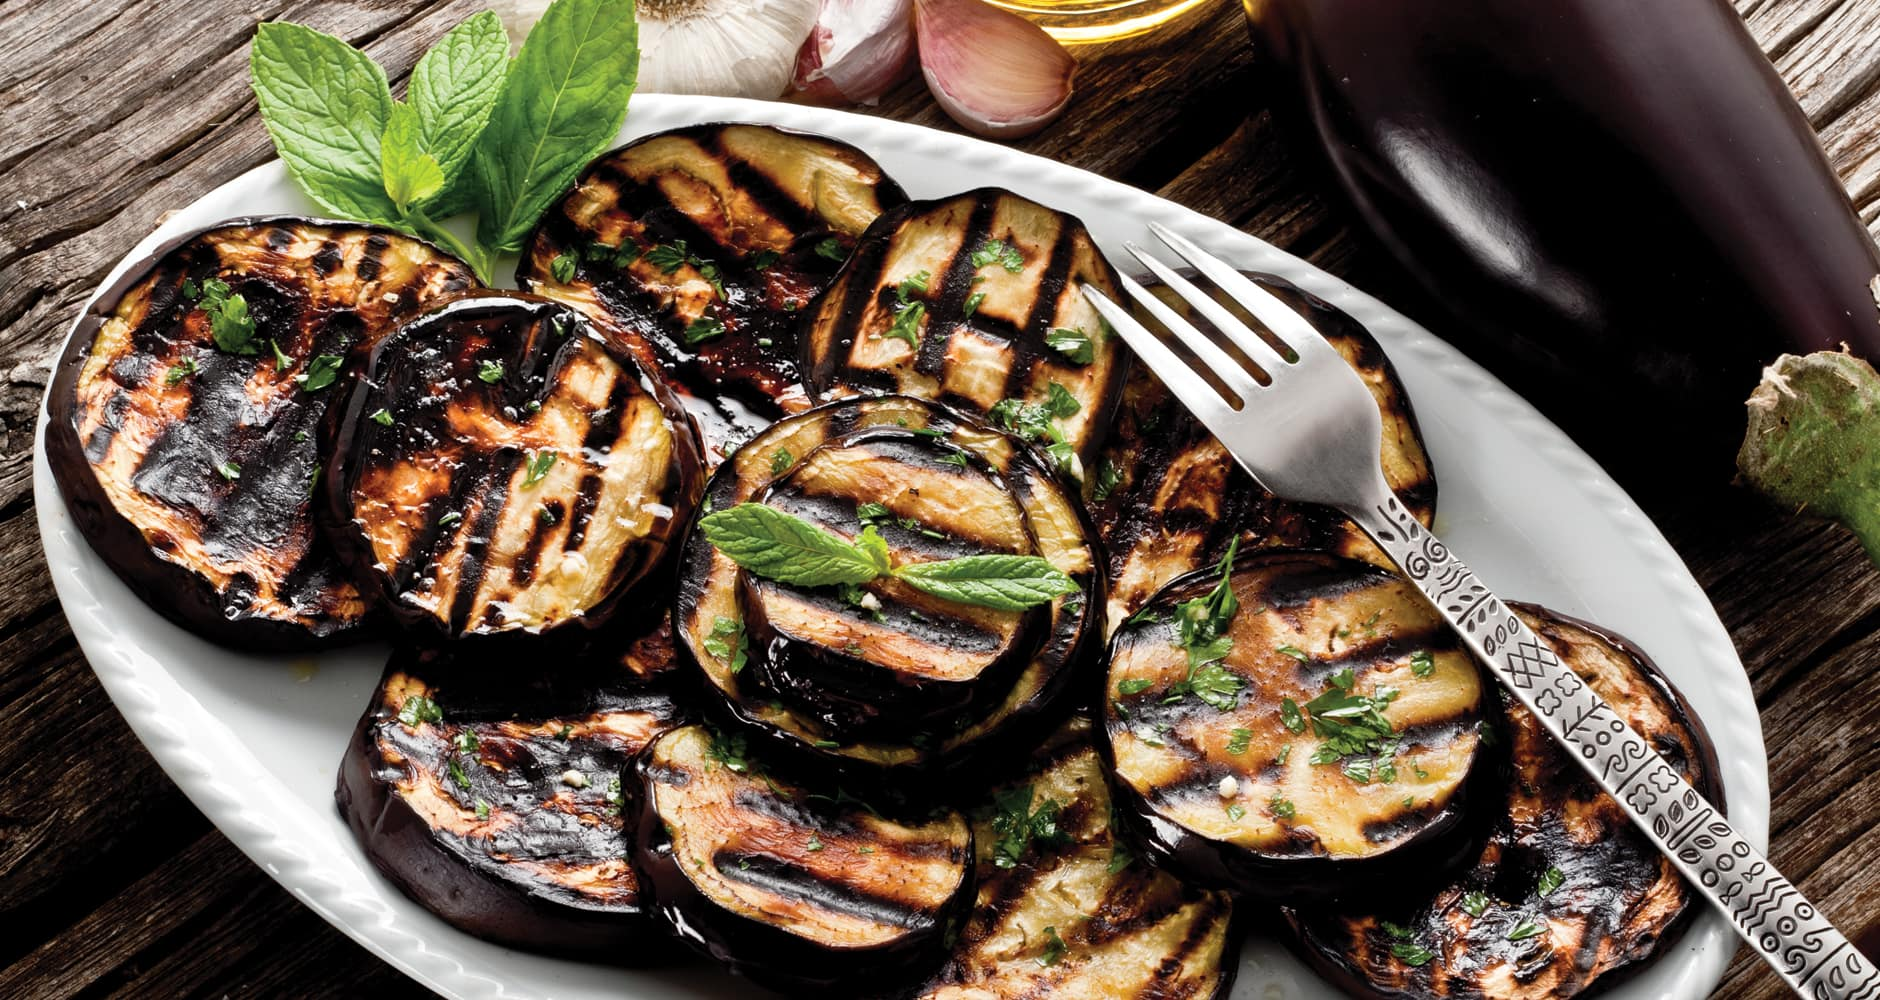 grilled eggplant slices on a plate.